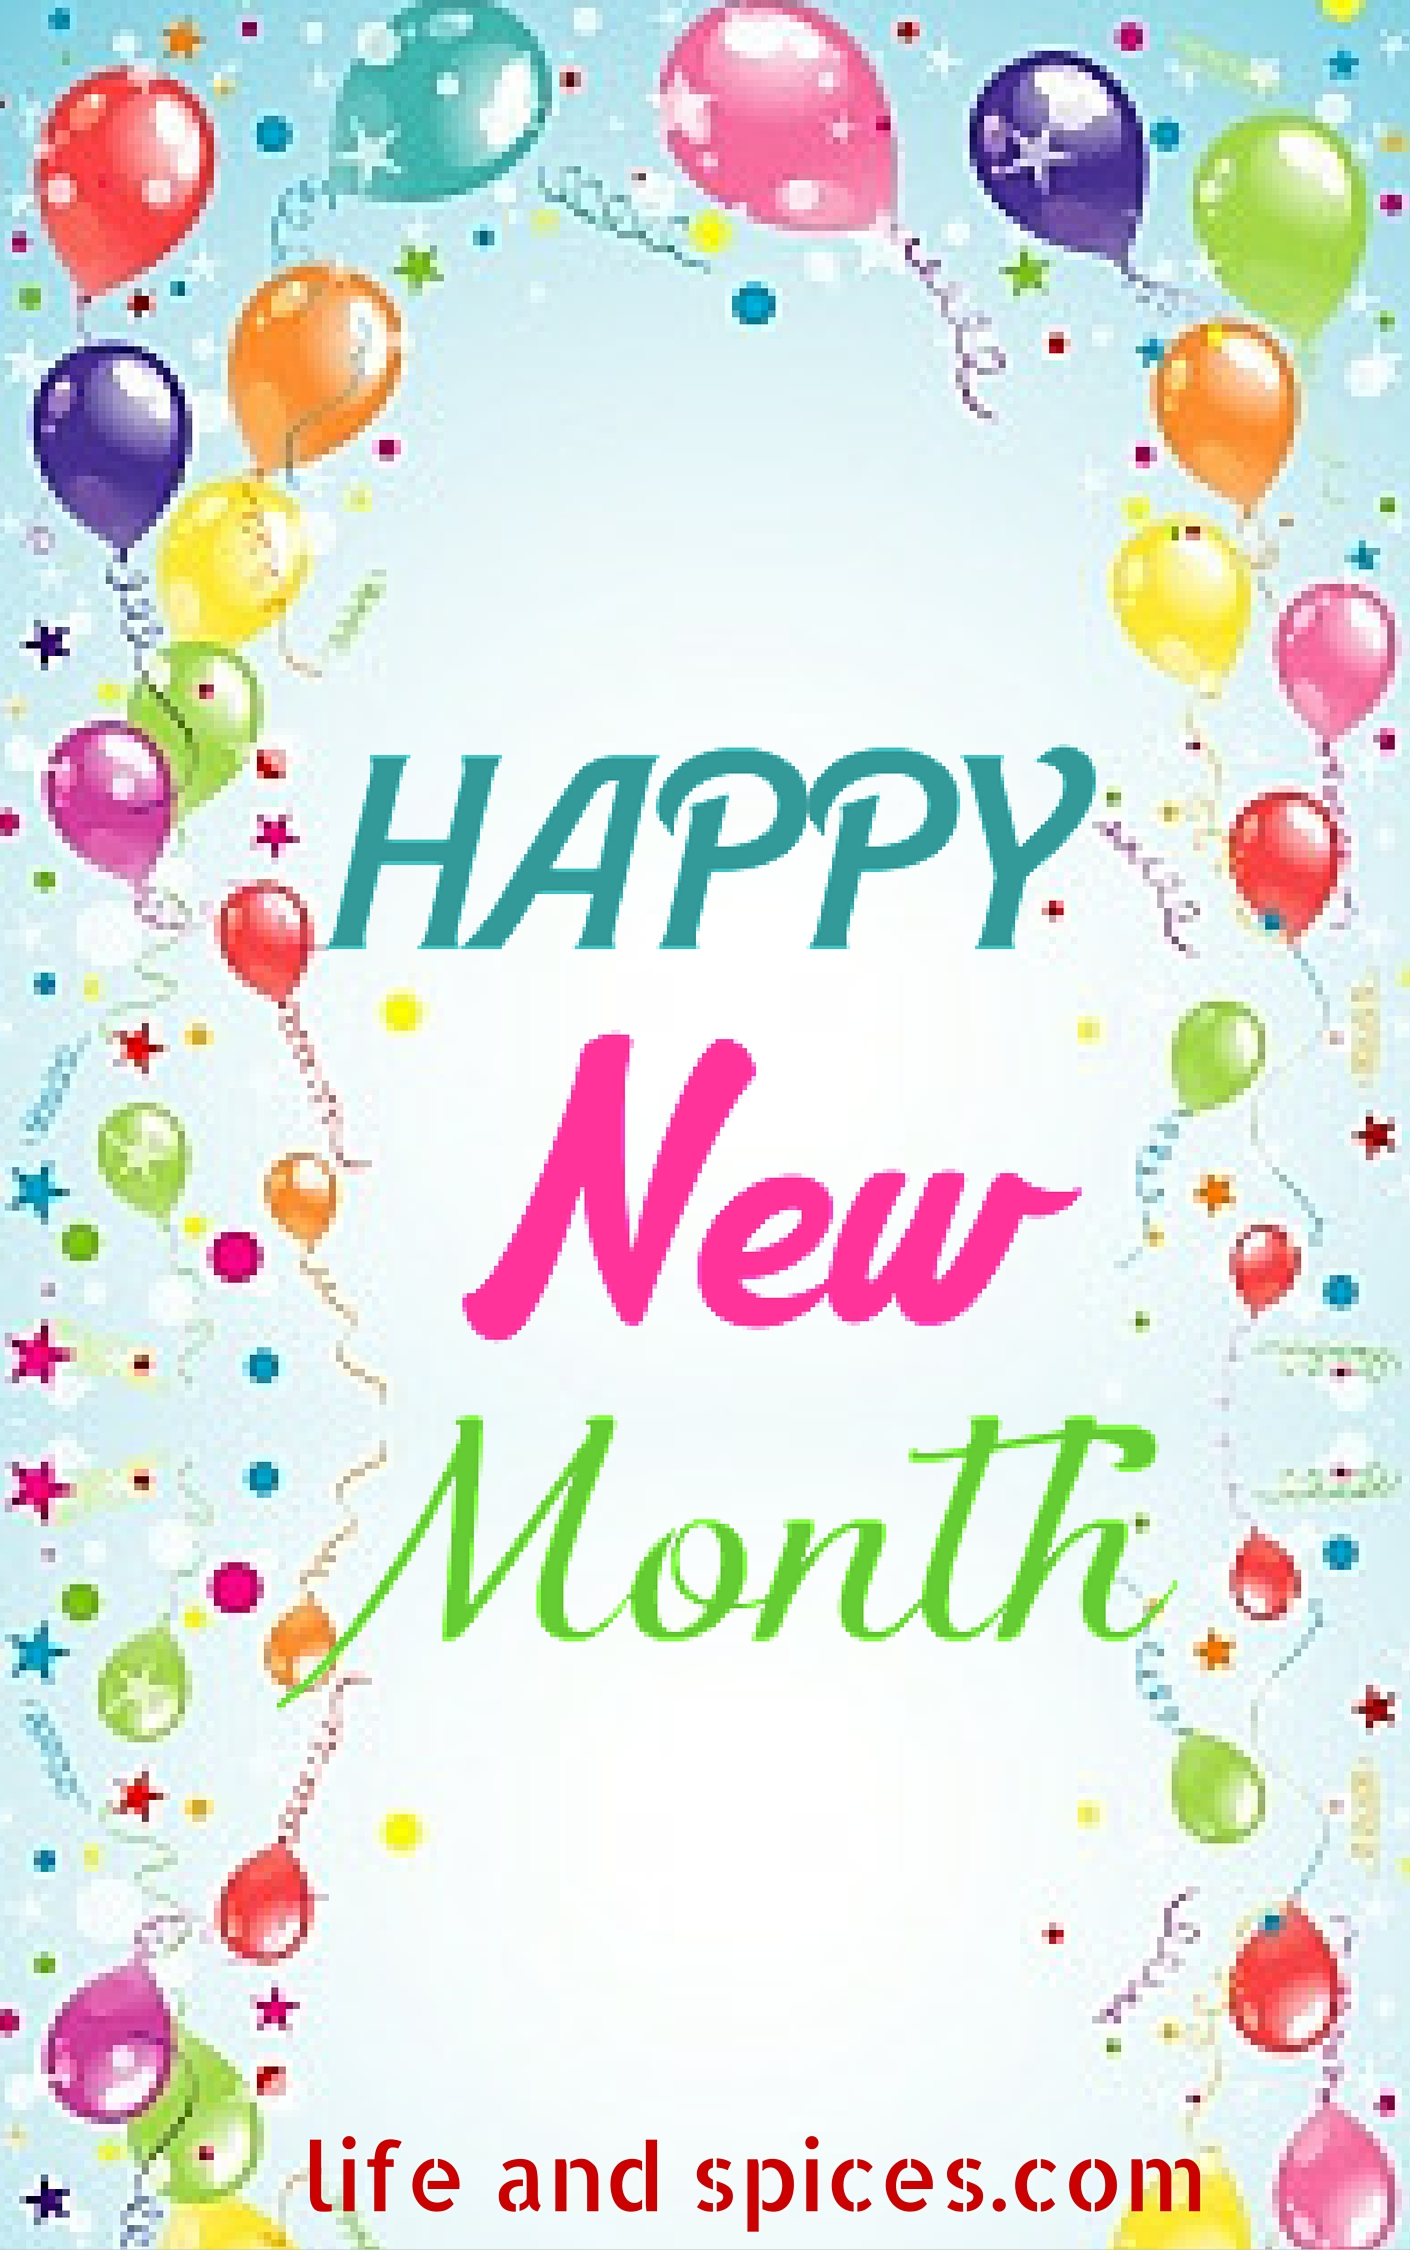 Welcome to september life and spices as we come into this ninth month of the year may our joys be multiplied may every day be the dawn of a new blessing may our good tidings abound m4hsunfo Choice Image